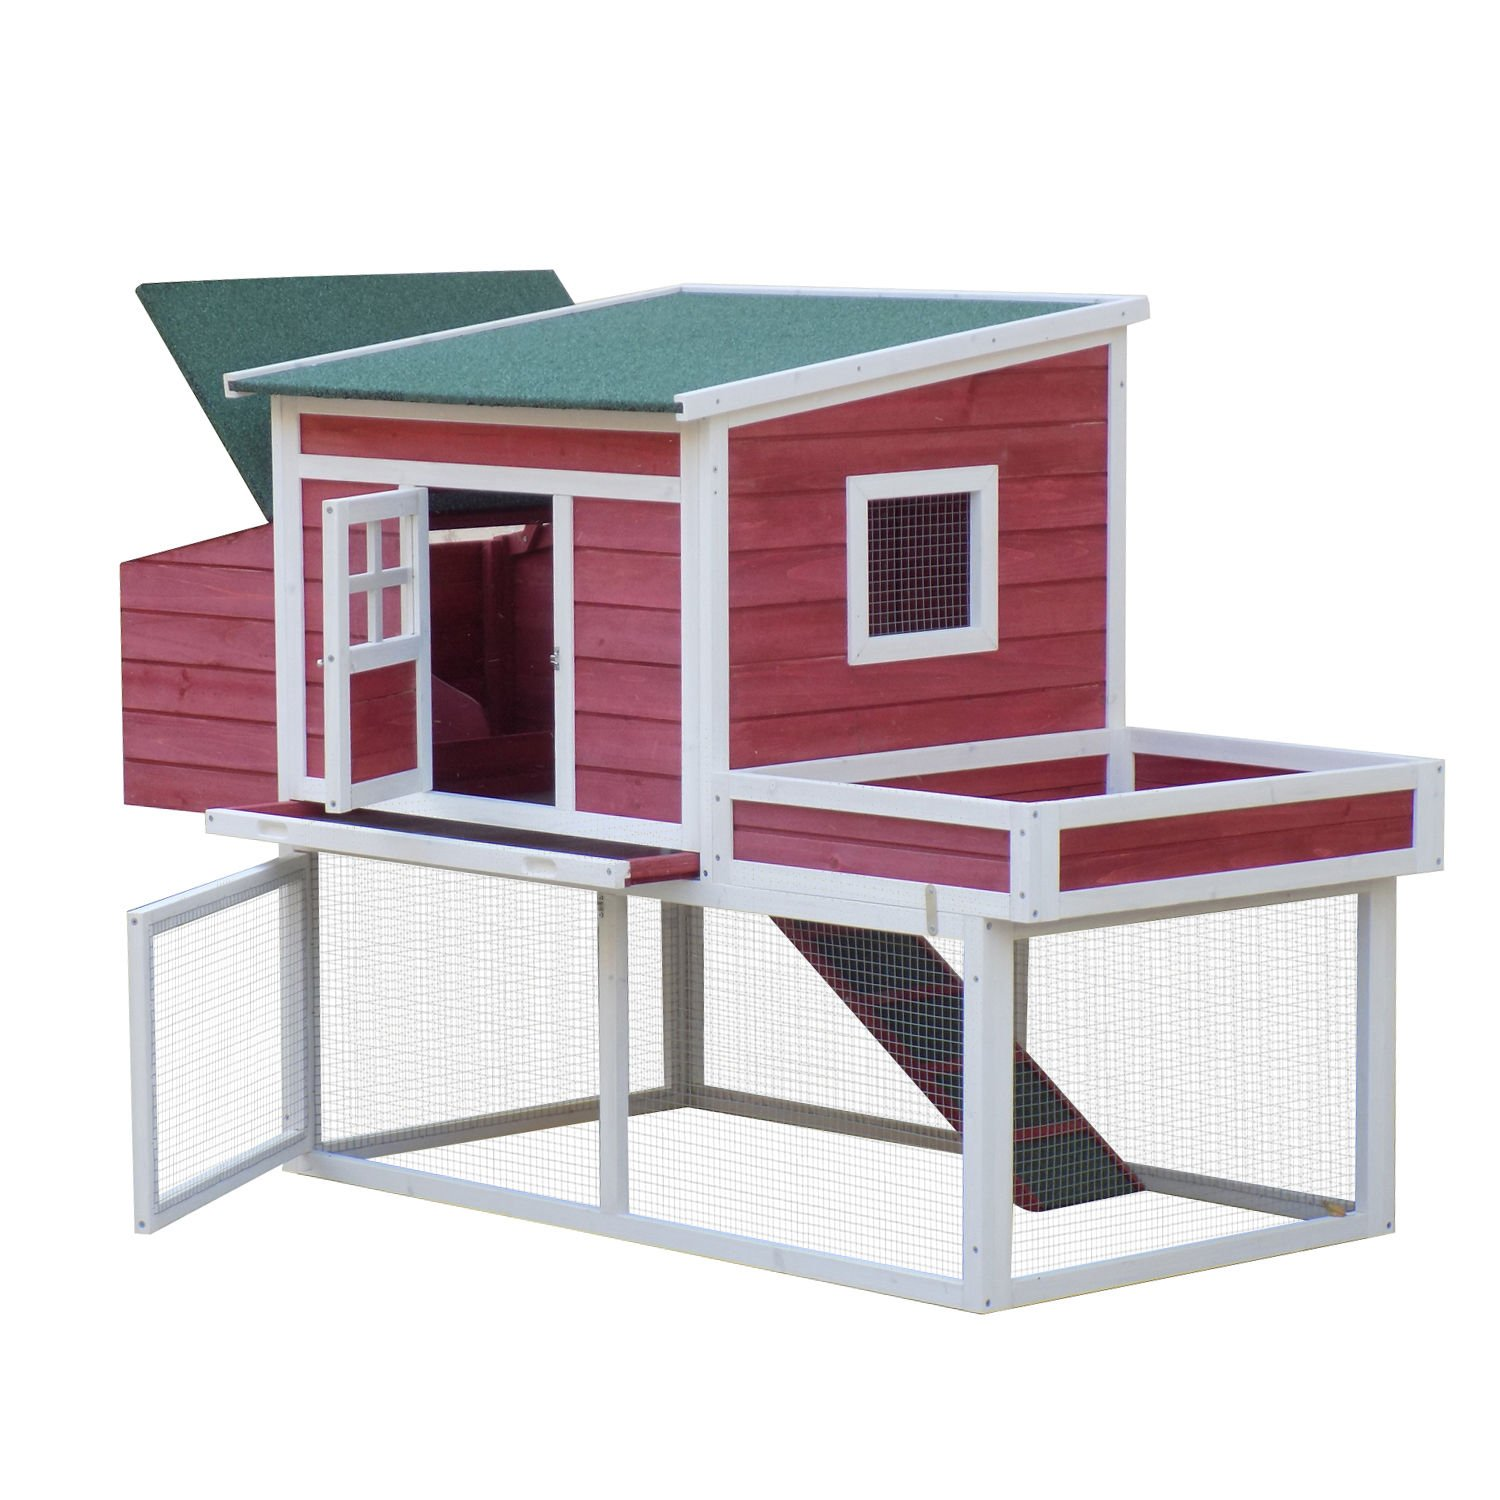 Pawhut 67'' Wooden Chicken Coop Poultry Cage Hutch with Garden Box, Run Area and Nesting Box